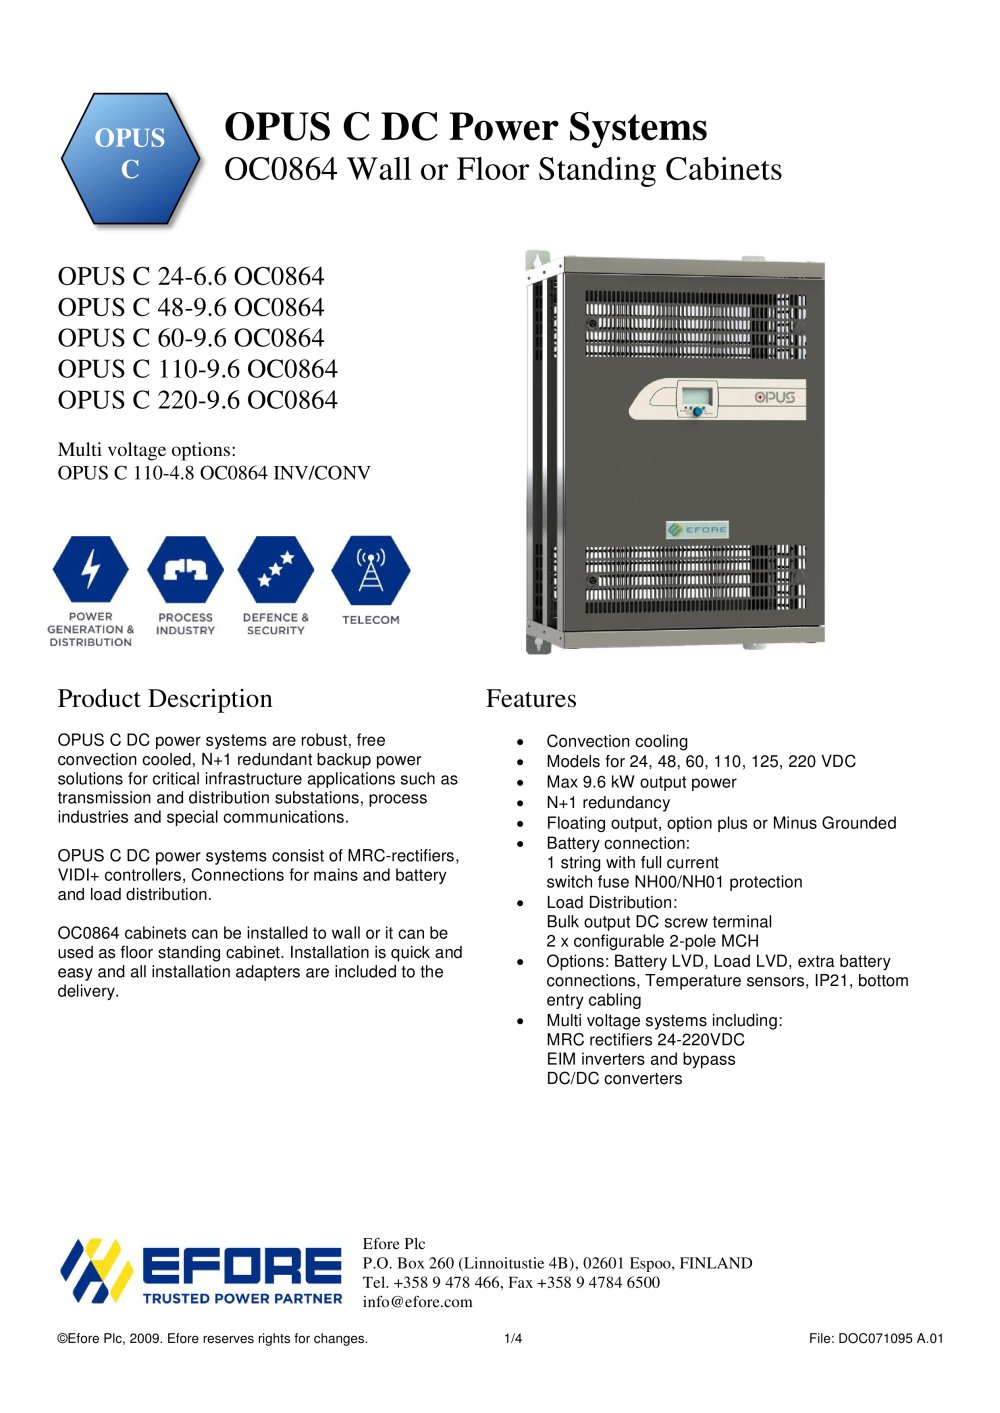 OPUS C DC Power Systems OC0864 Wall Or Floor Standing Cabinets   1 / 4 Pages